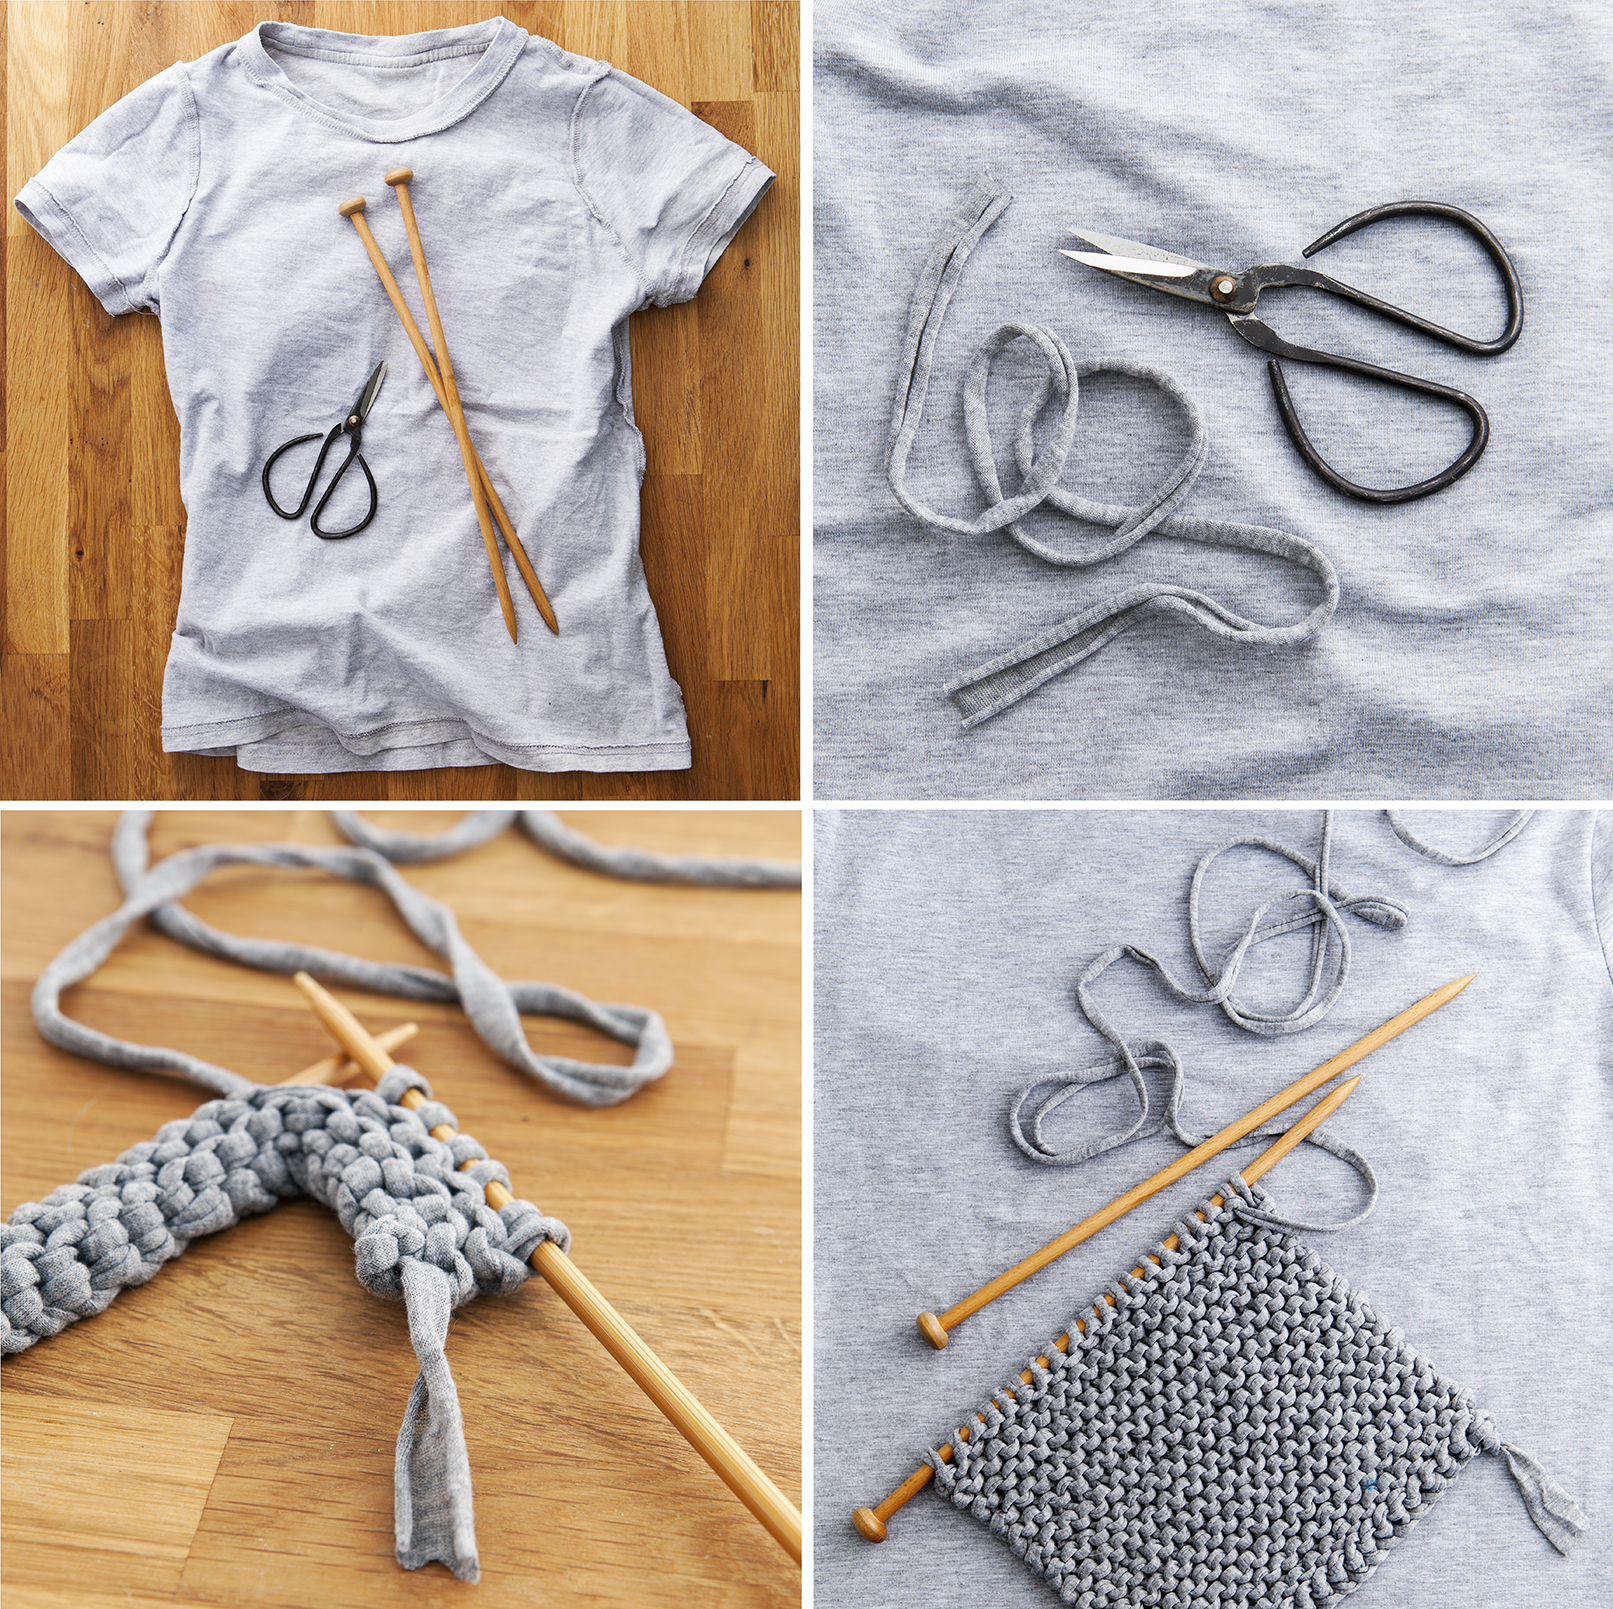 T-shirt Yarn Project | 52 Weekends | Stacy Grant